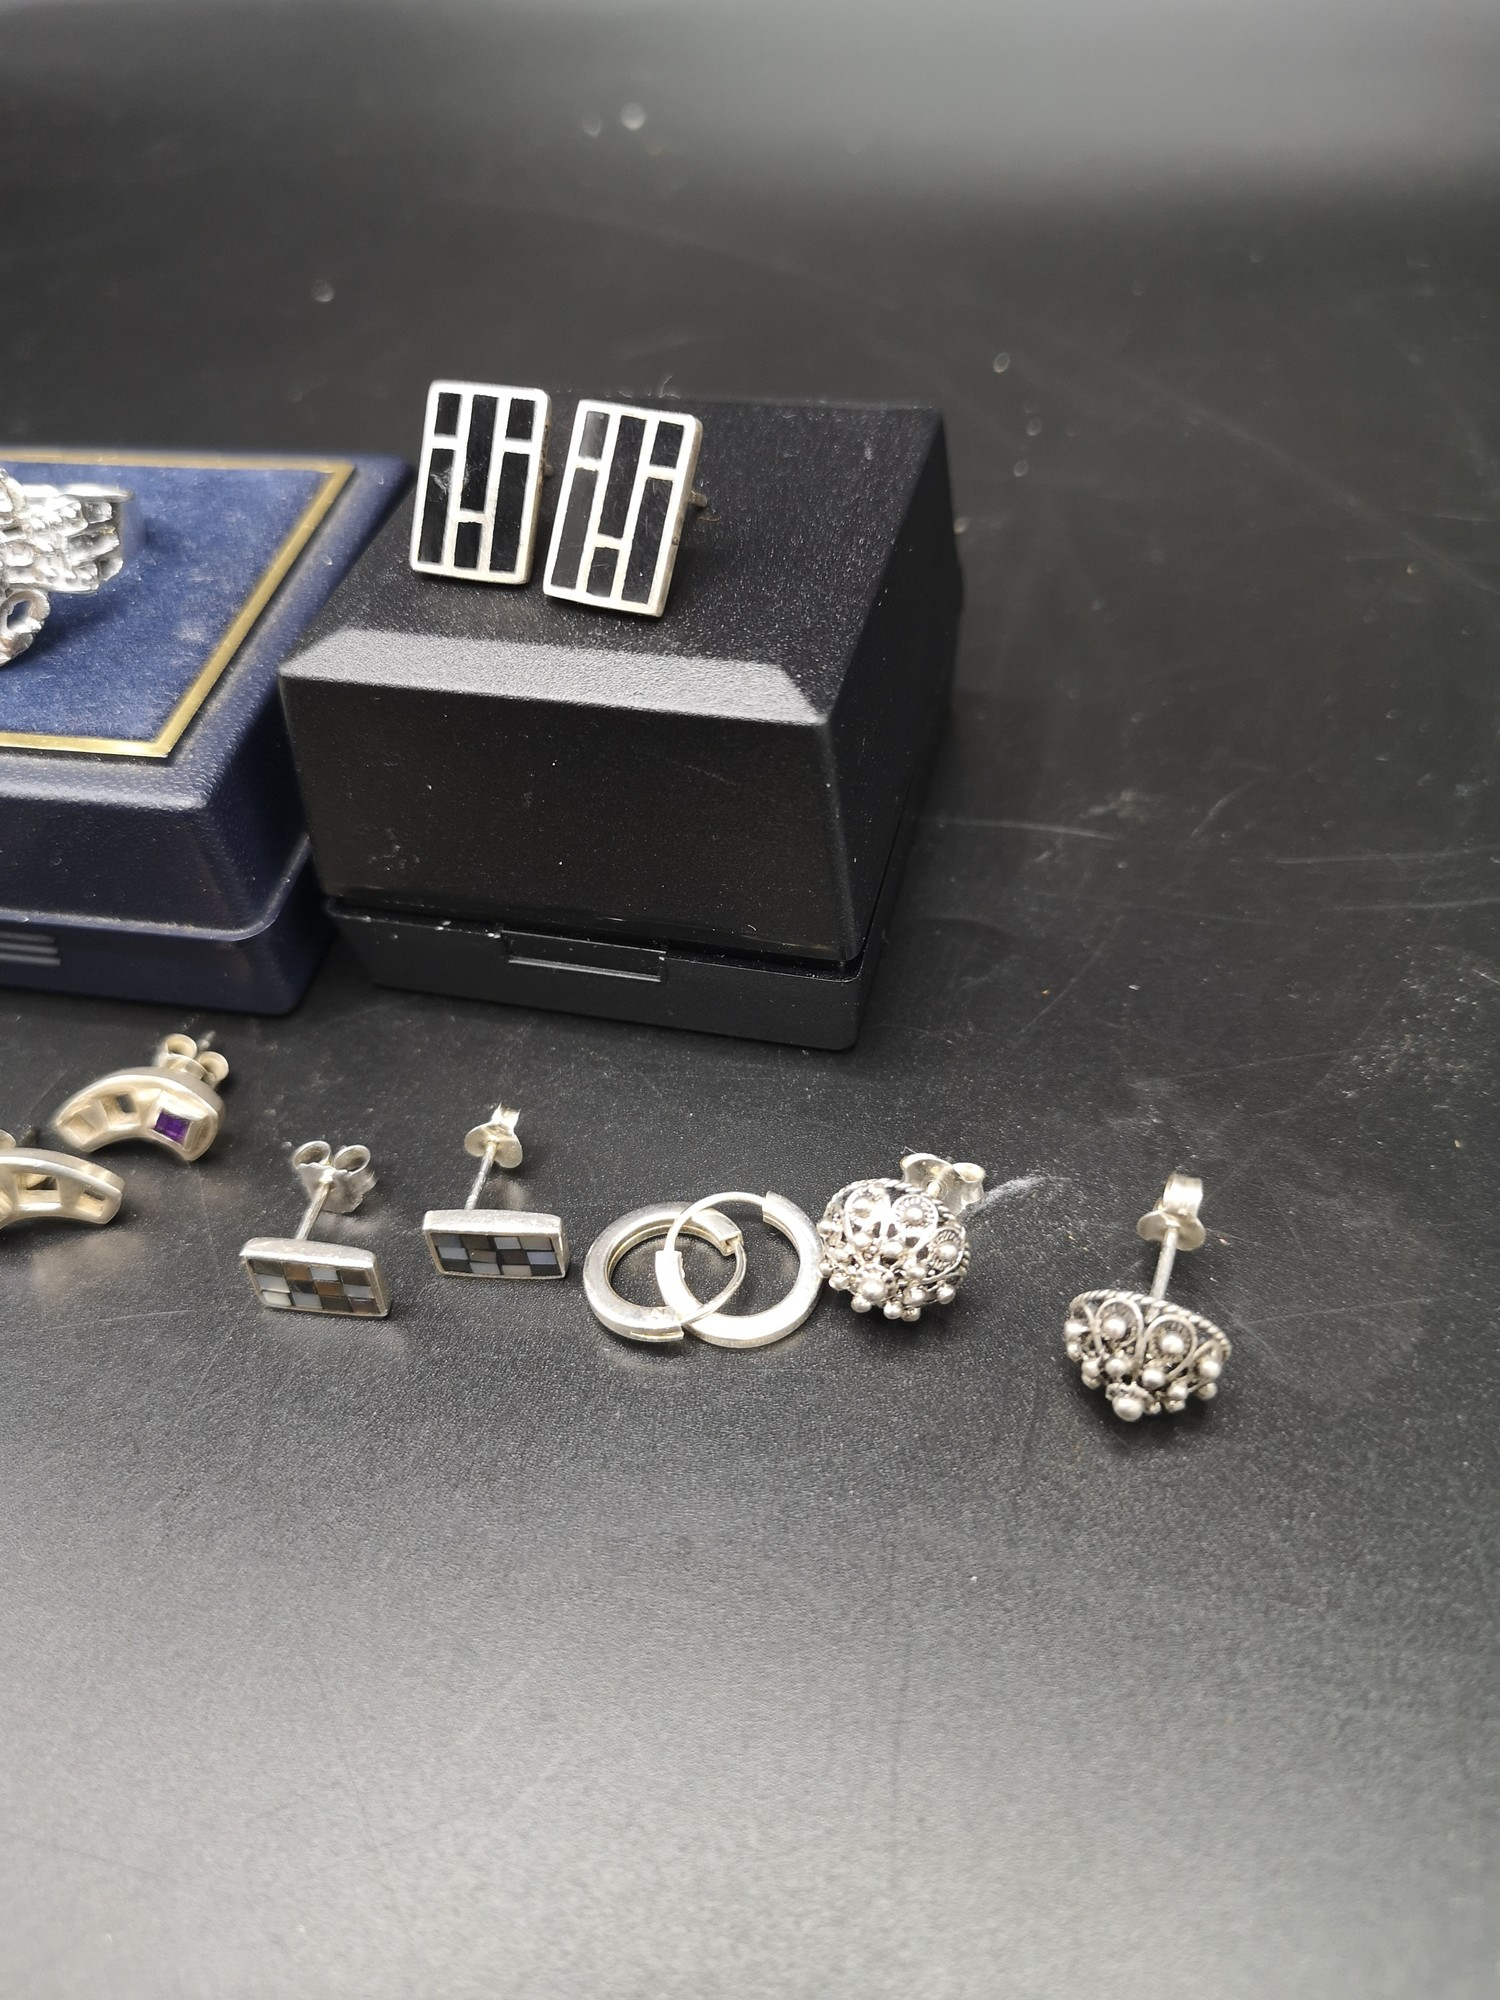 2 Silver ring together with 5 pairs of silver earrings. - Image 2 of 3